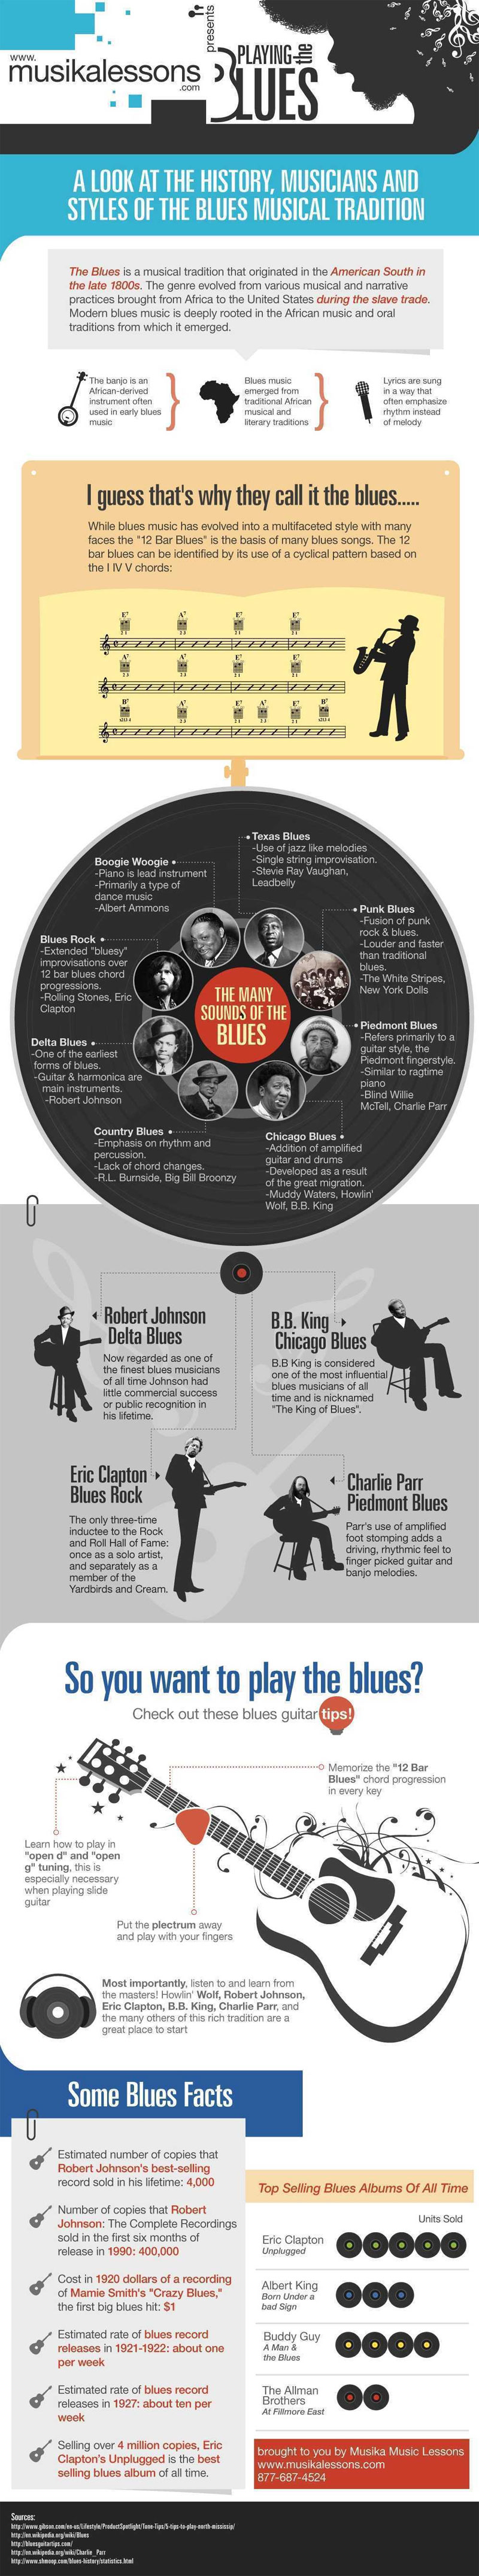 info1 - LOOKING BEHIND TO MOVE FORWARD: THE RICH HISTORY OF BLUES